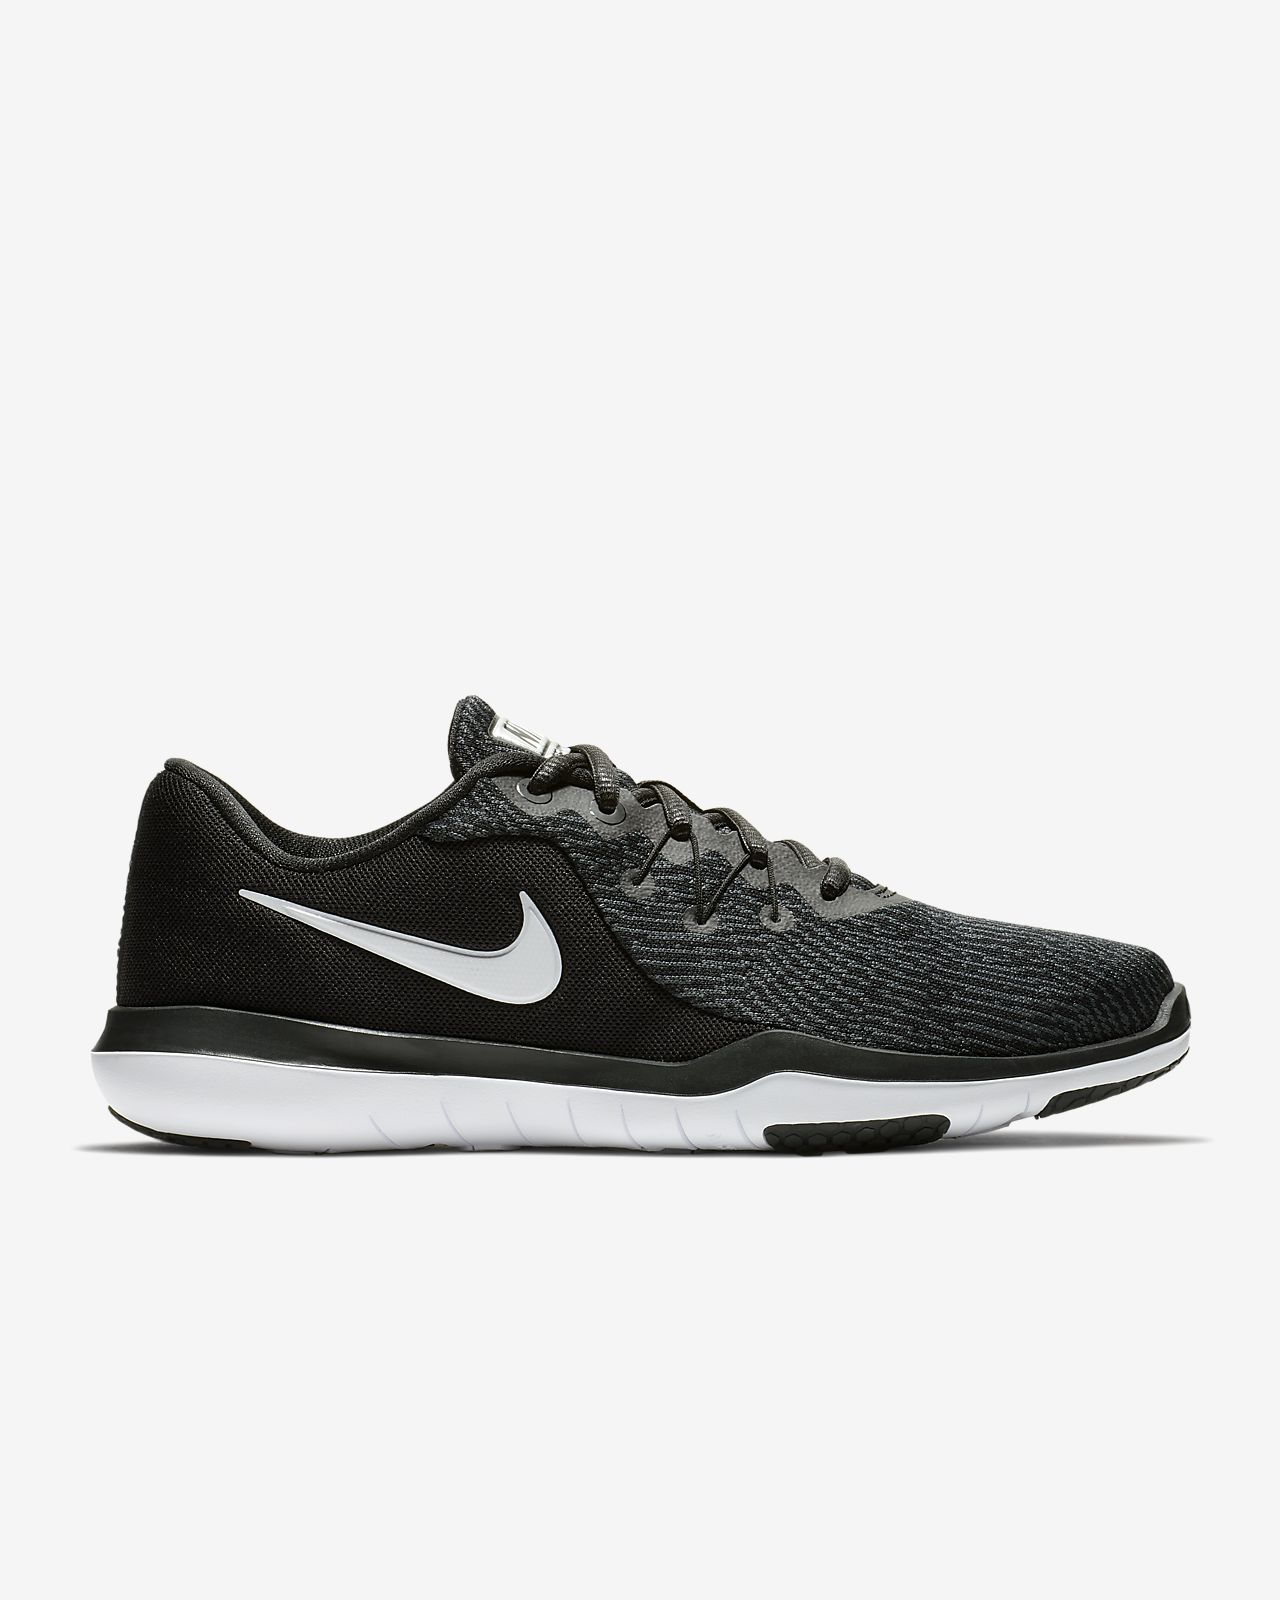 a9f16a30b3ac7 Nike Womens flex supreme tr 6 Low Top Lace Up Running Sneaker